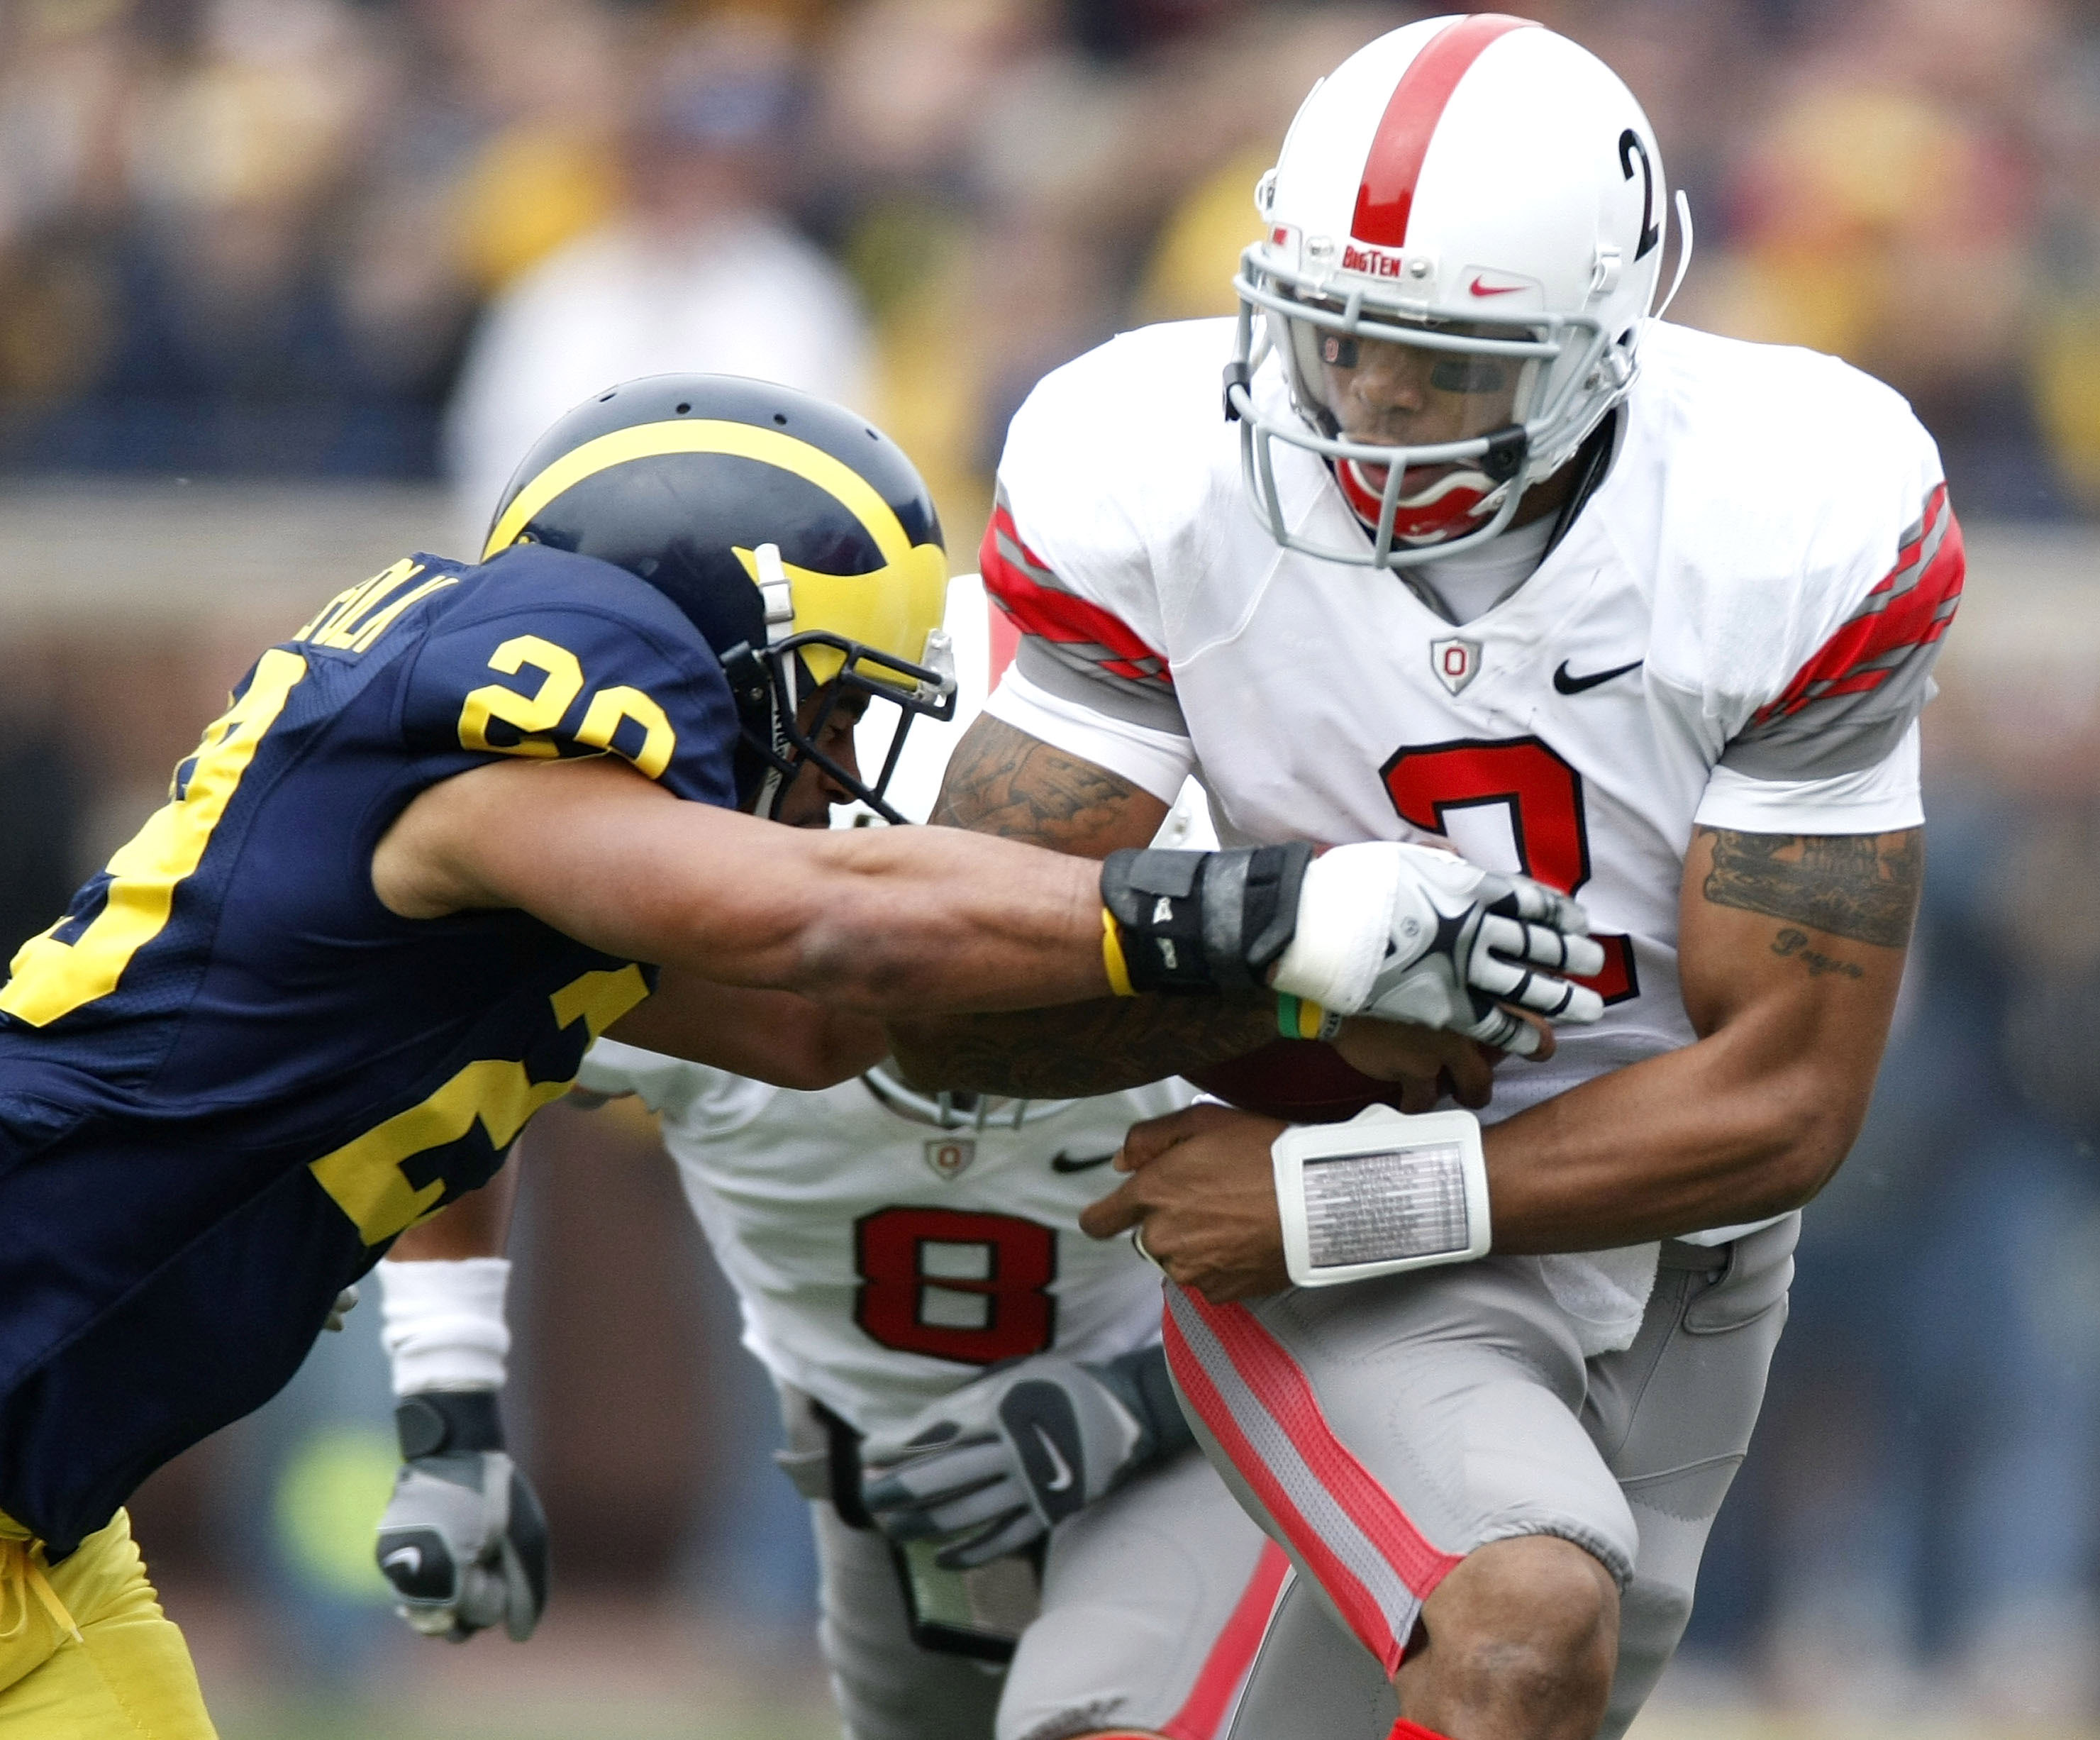 ANN ARBOR, MI - NOVEMBER 21:  Terrelle Pryor #2 of the Ohio State Buckeyes tries to get around Troy Woolfolk #29 of the Michigan Wolverines on November 21, 2009 at Michigan Stadium in Ann Arbor, Michigan.  (Photo by Gregory Shamus/Getty Images)